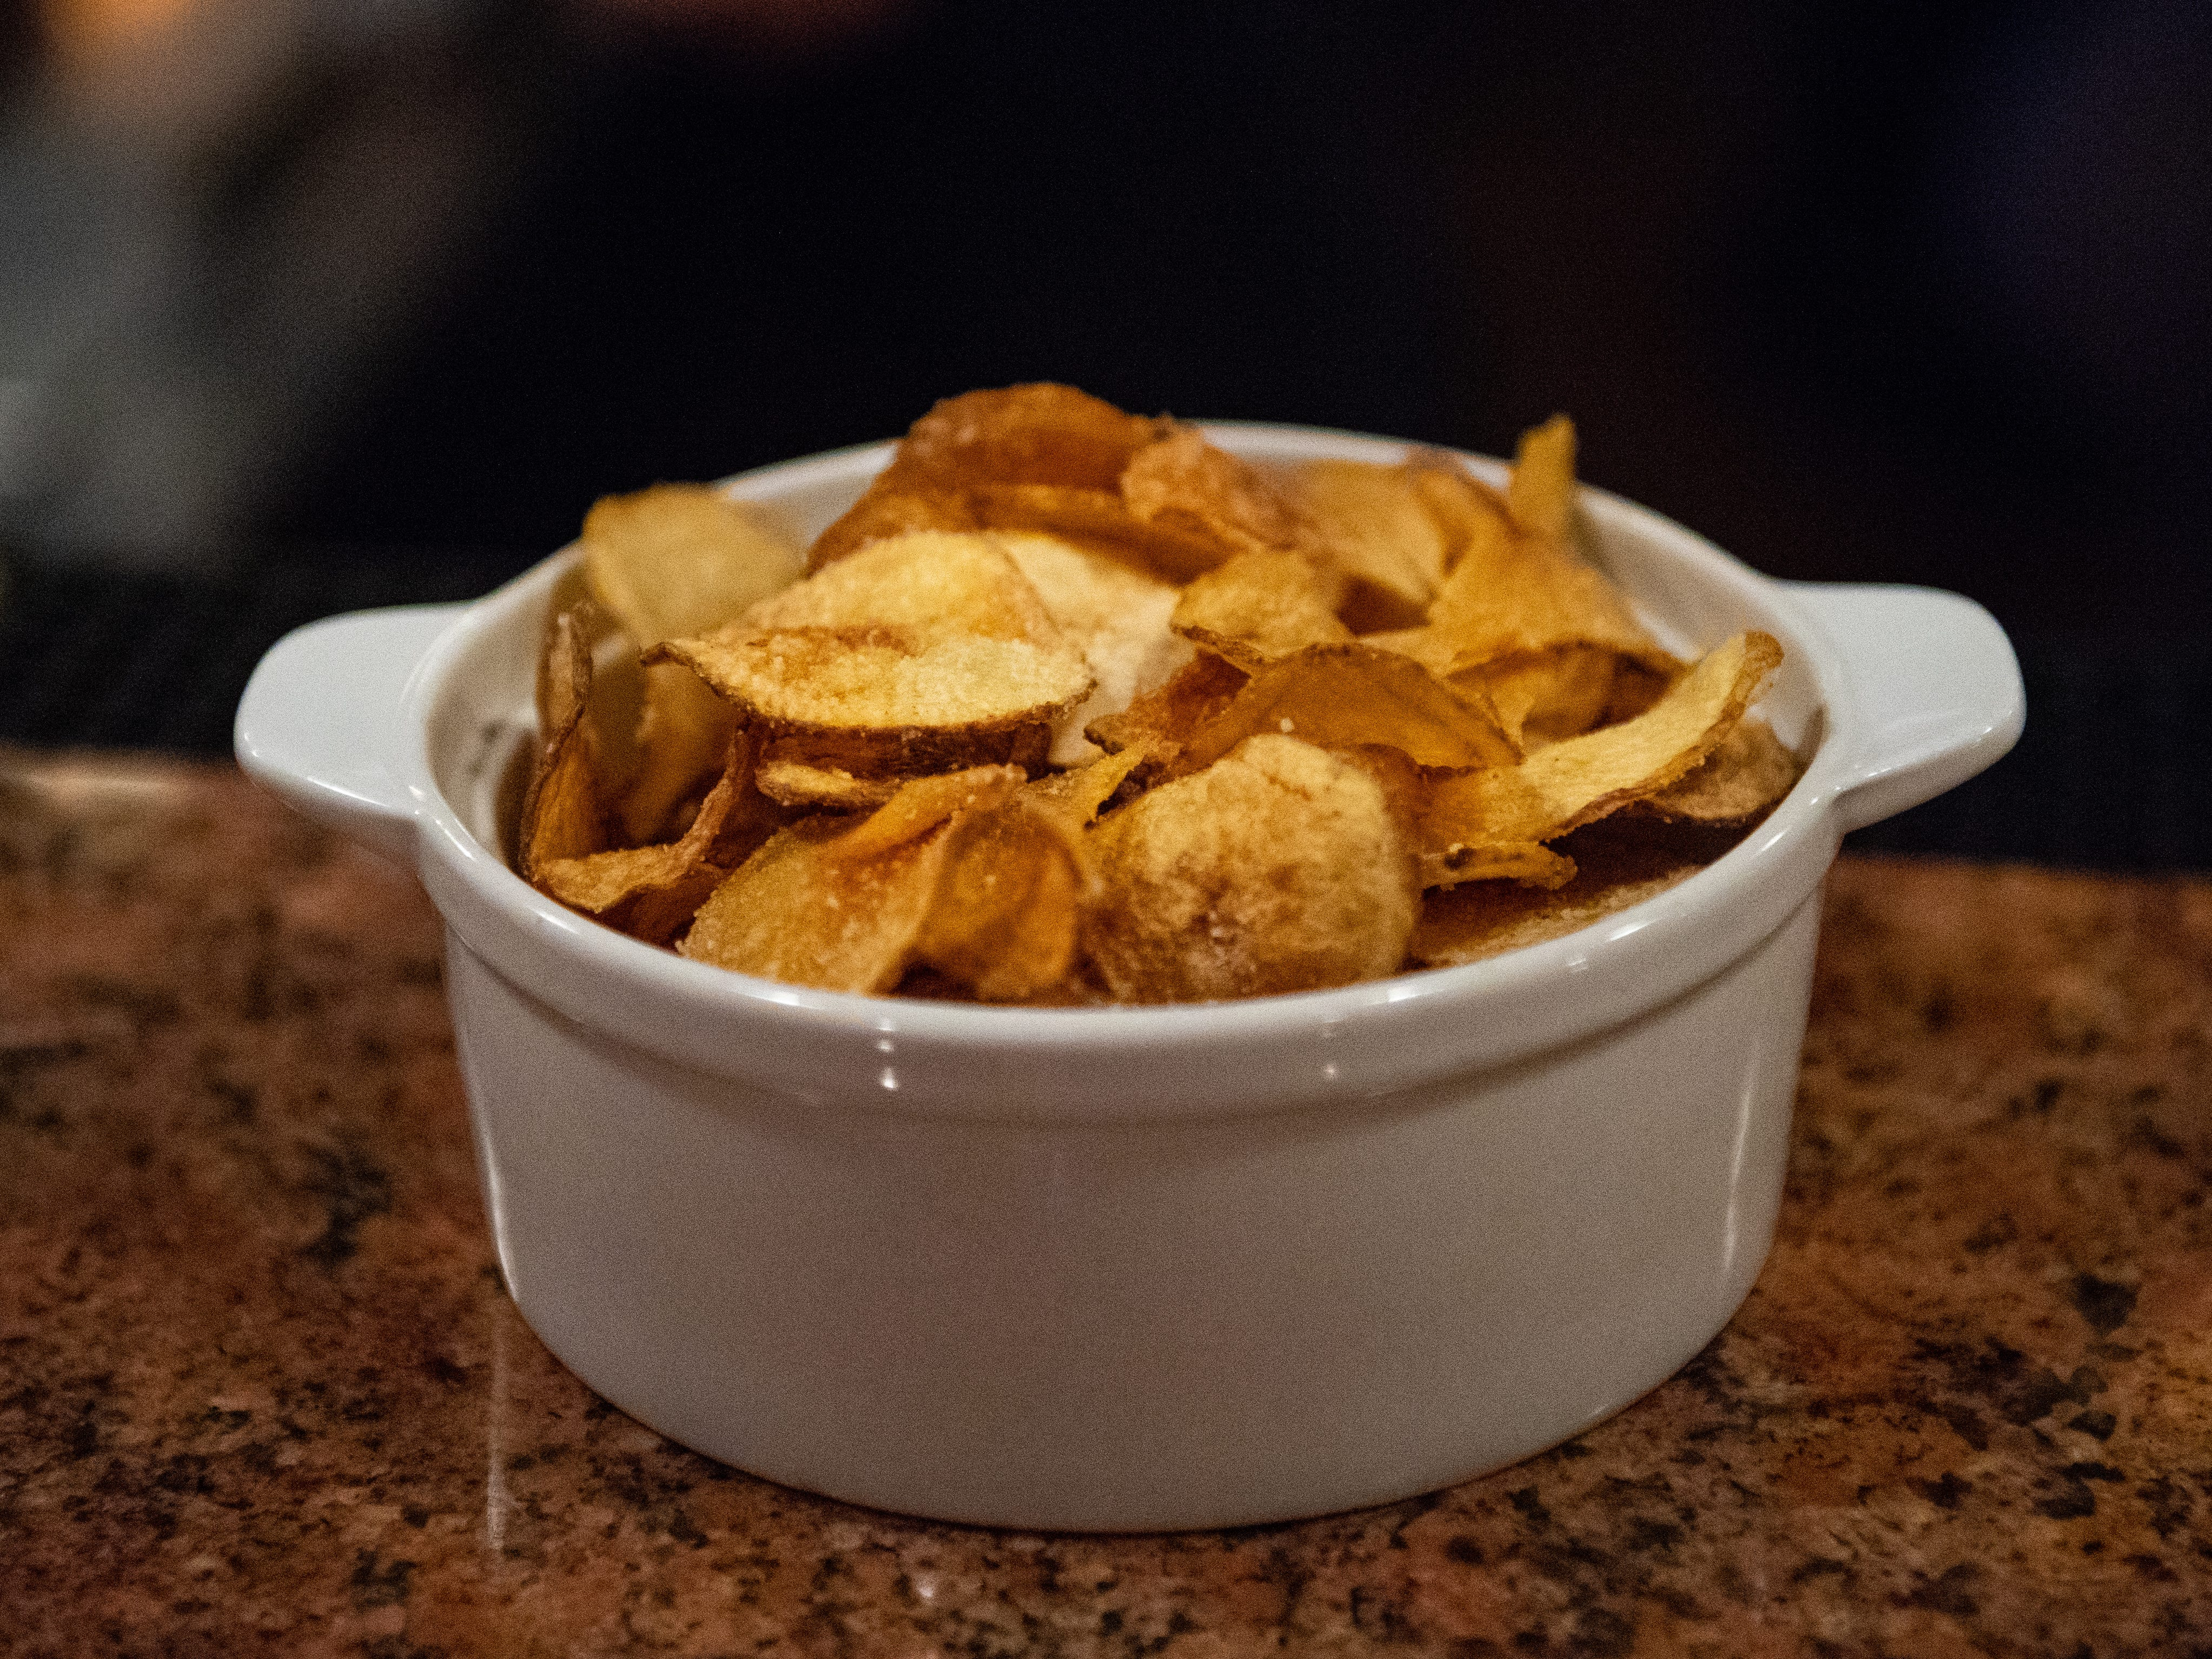 During happy hour, complimentary chips are set out for guests to enjoy at Roosevelt Tavern in downtown York, November 9, 2018.